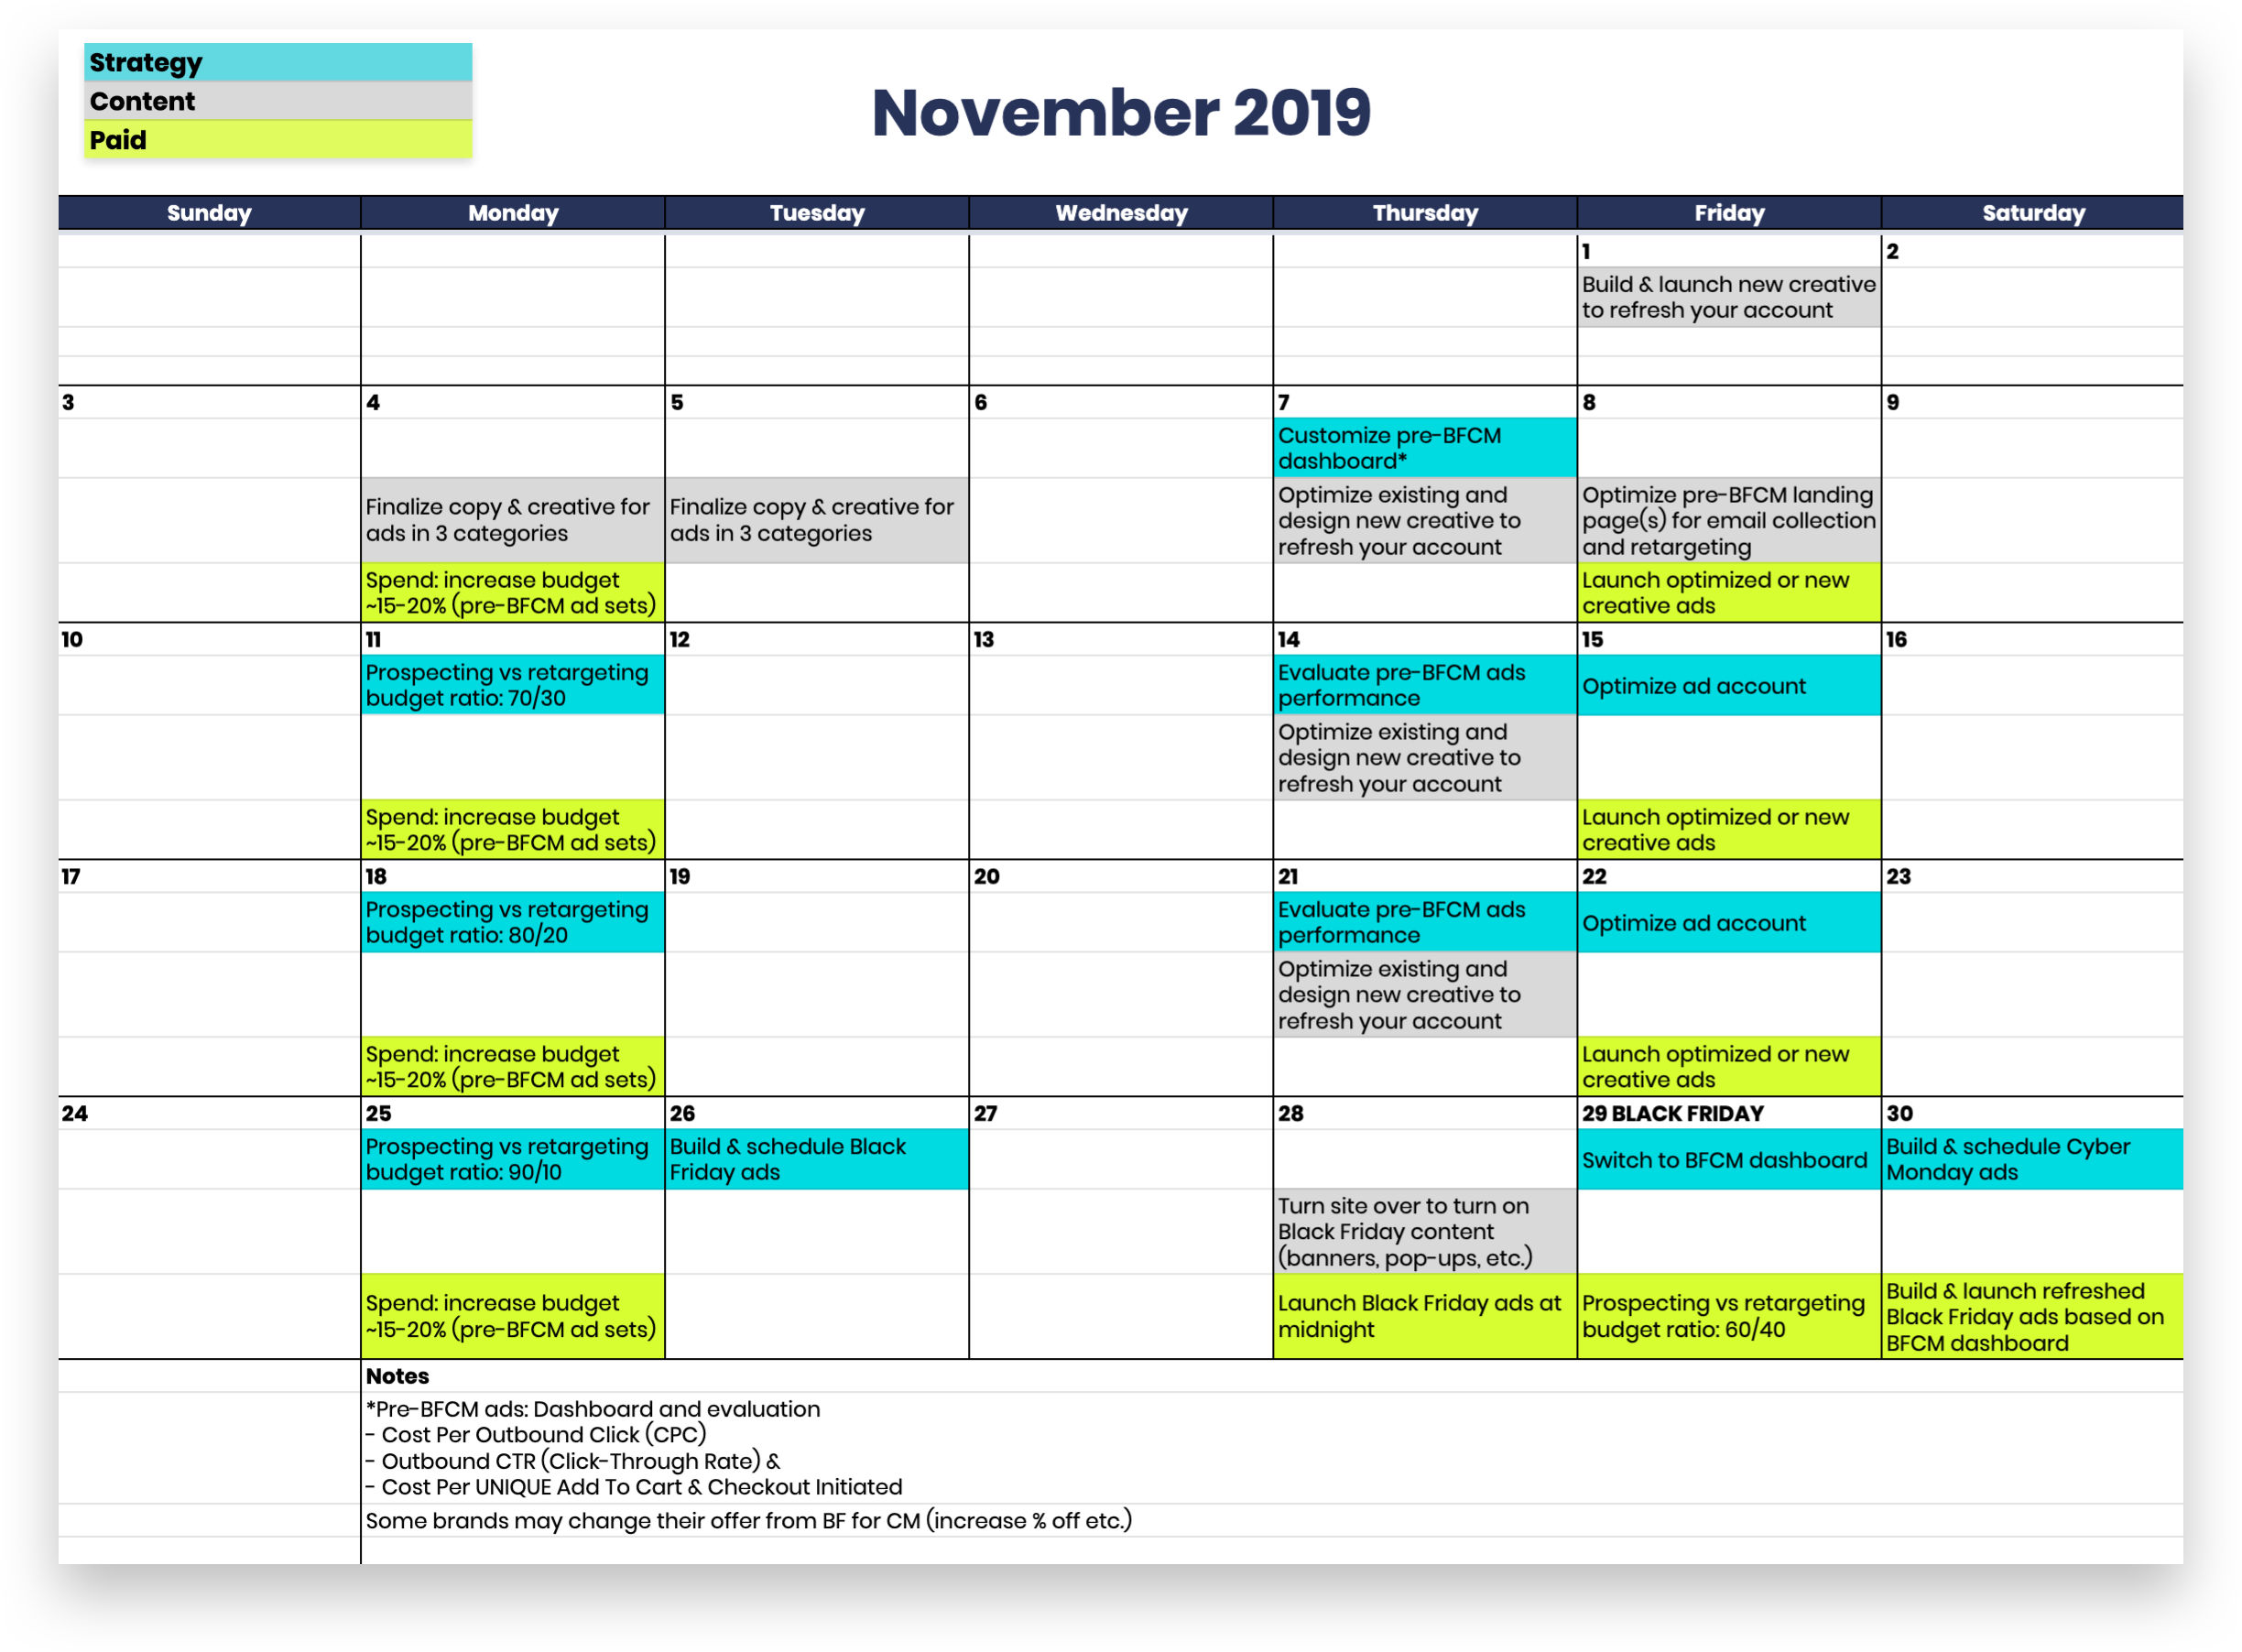 November Black Friday Campaigns Calendar